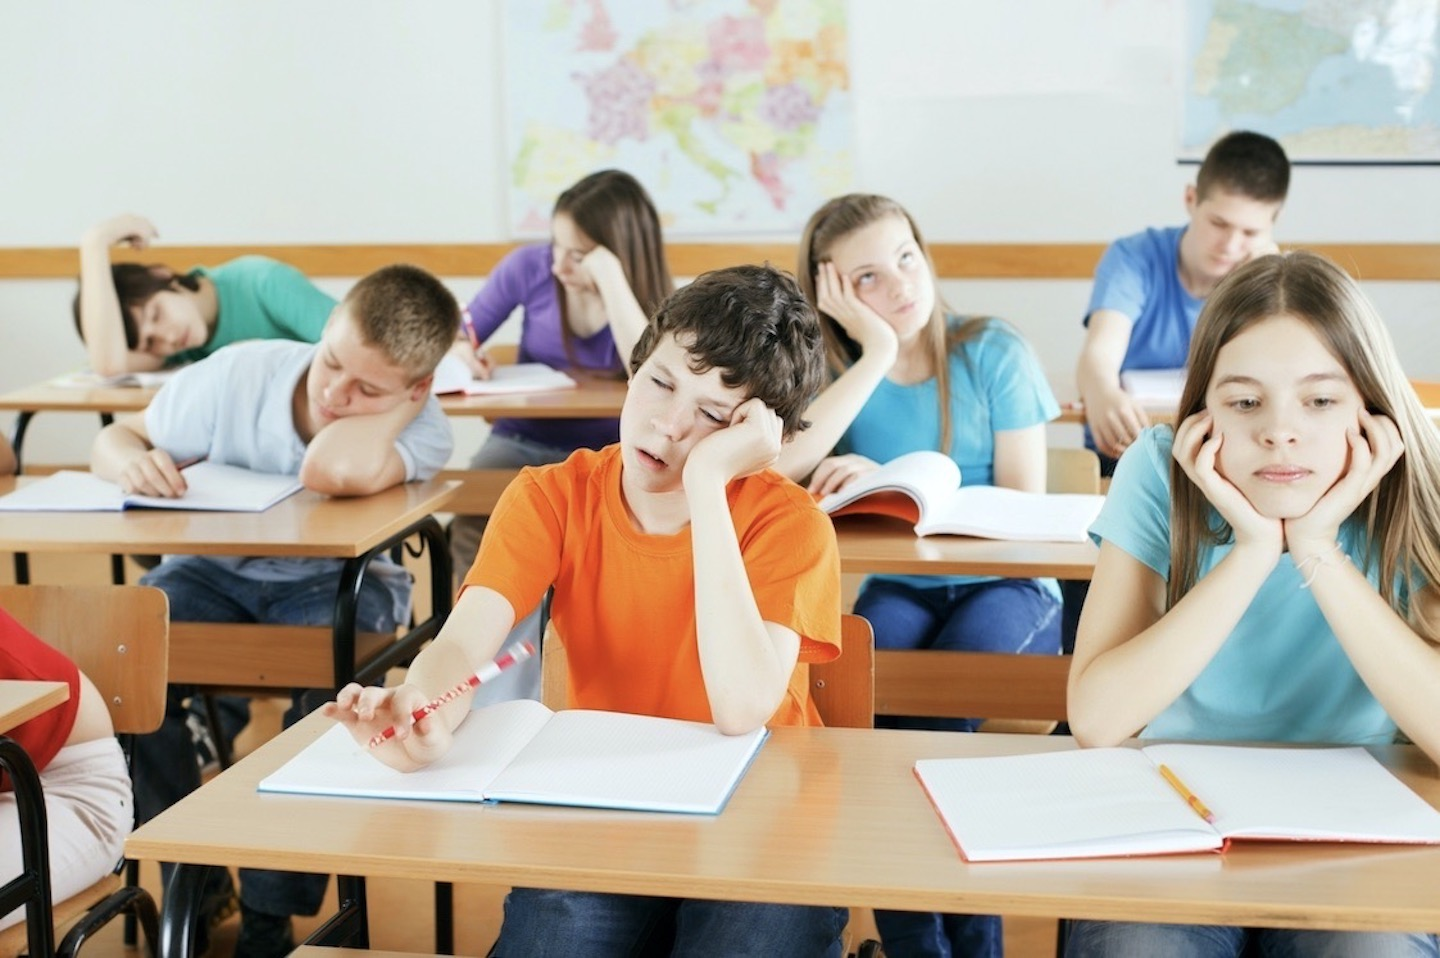 Impacts of Warming Temperatures on Education and Learning